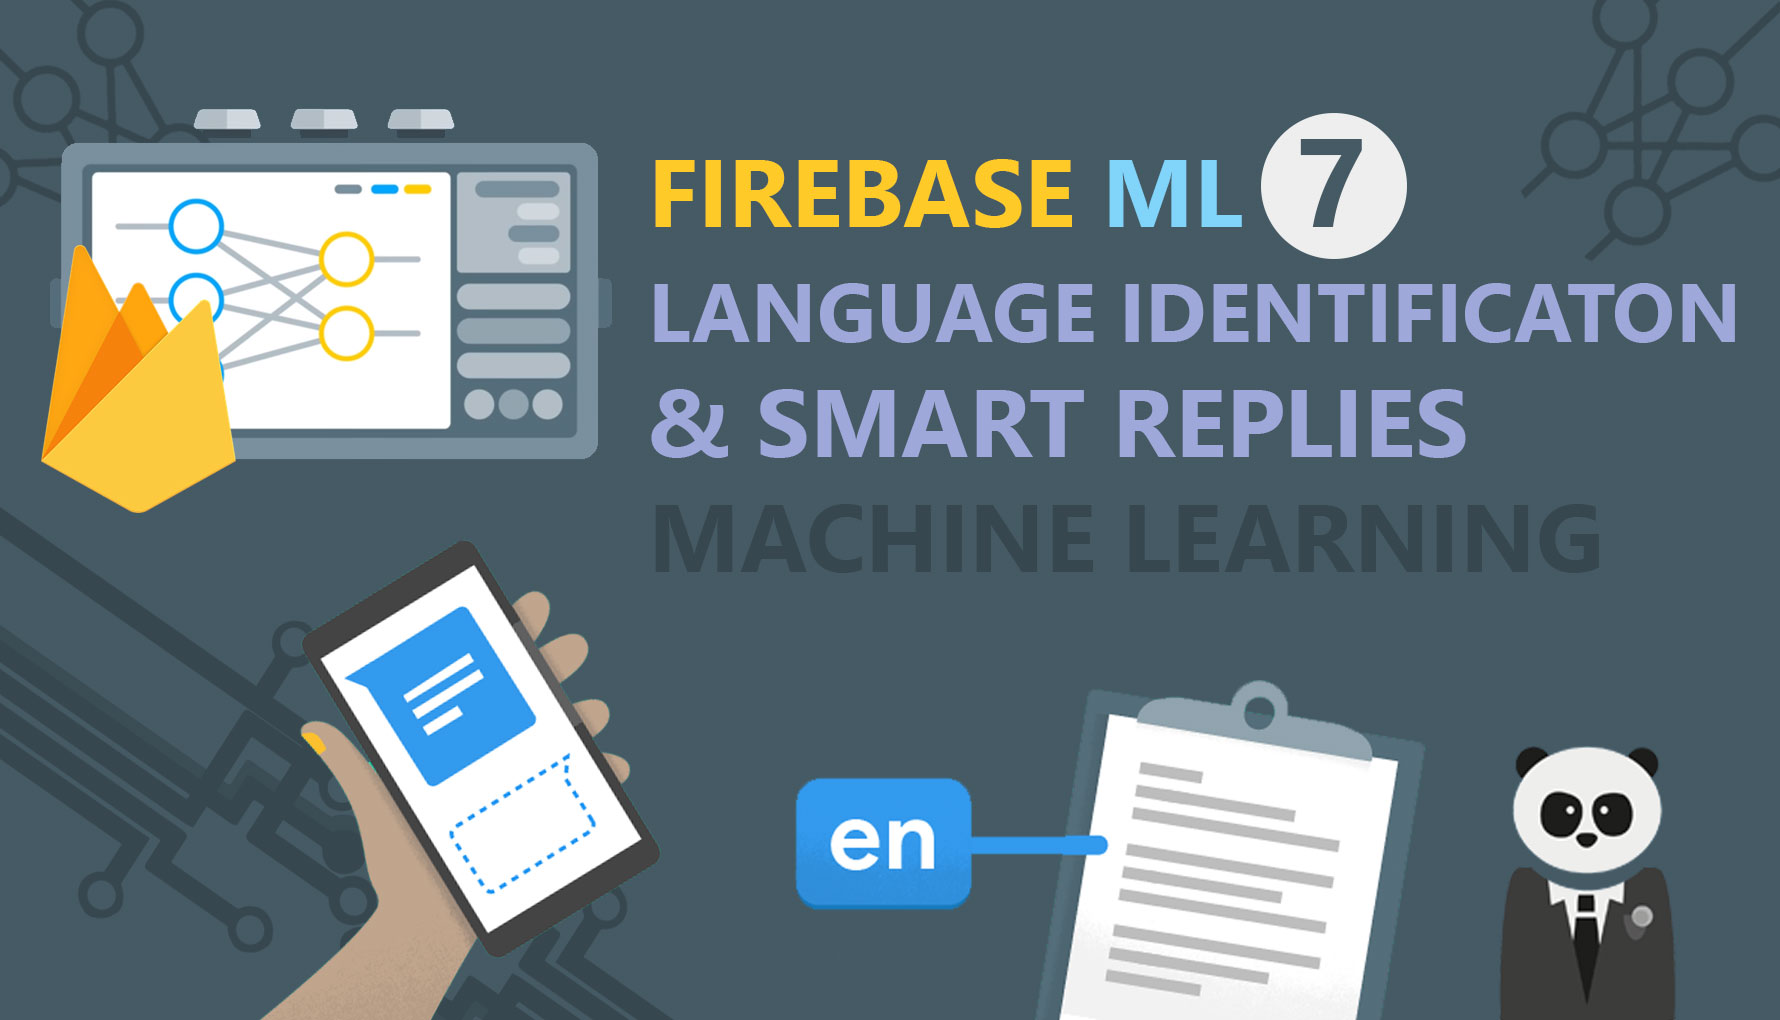 Firebase ML Kit 7: Language Identification & Smart Replies